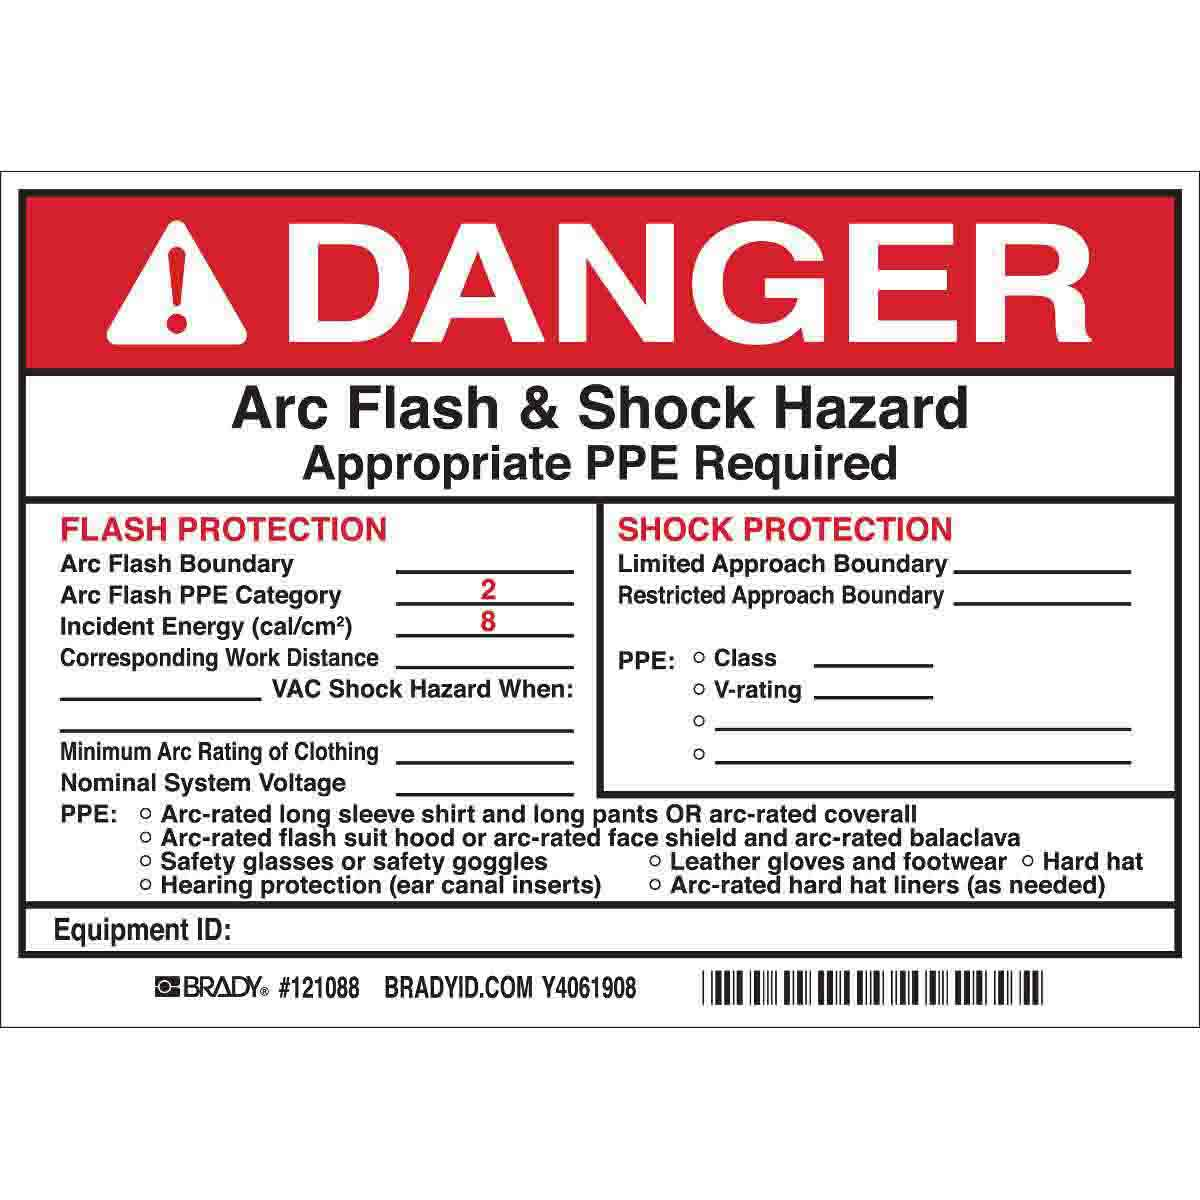 DANGER Flash Protection Arc Flash Boundary Arc Flash PPE Category ...